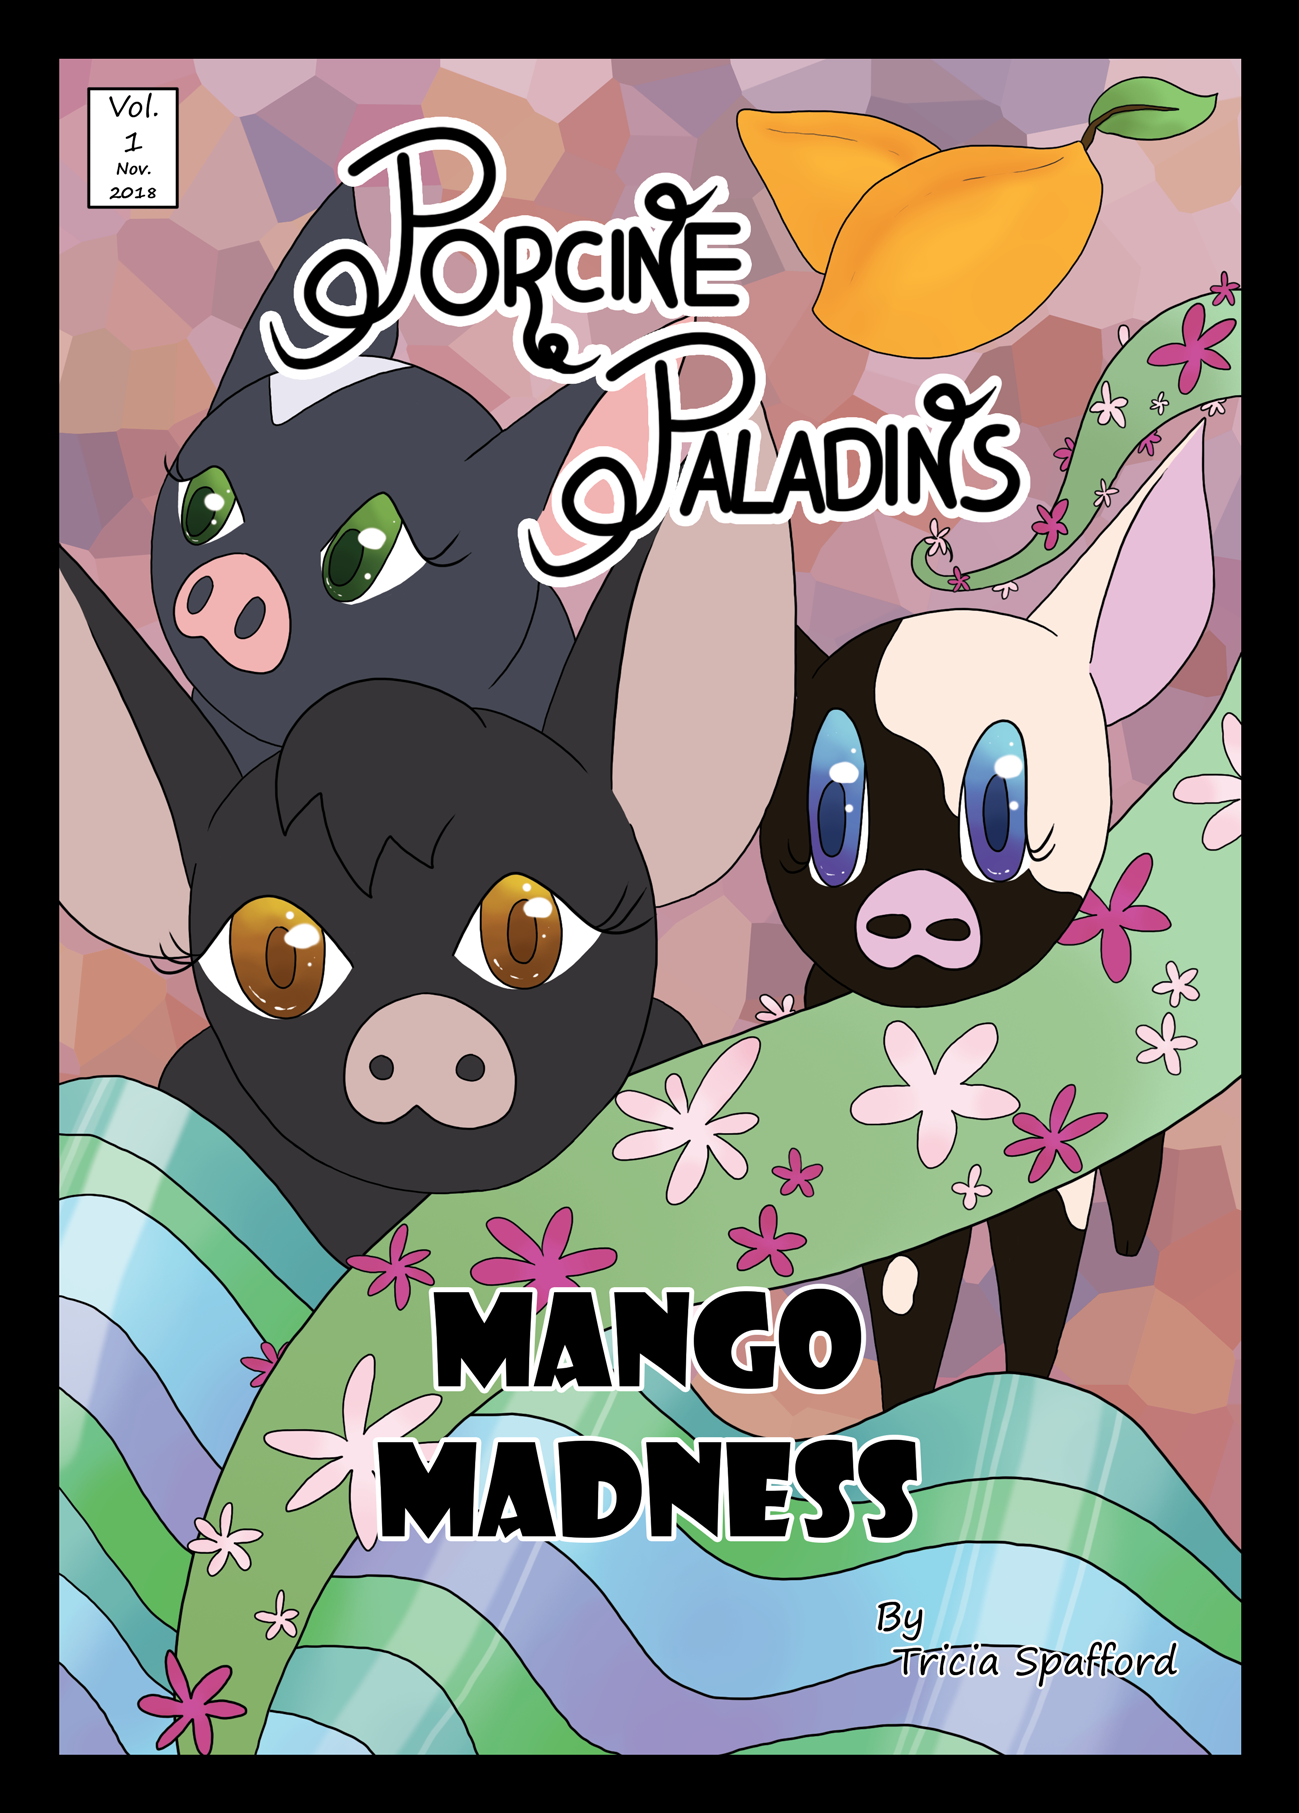 The revamped cover for Volume 1 of the 'Porcine Paladins' comic series, 'Mango Madness'. Only available on the digital copy.